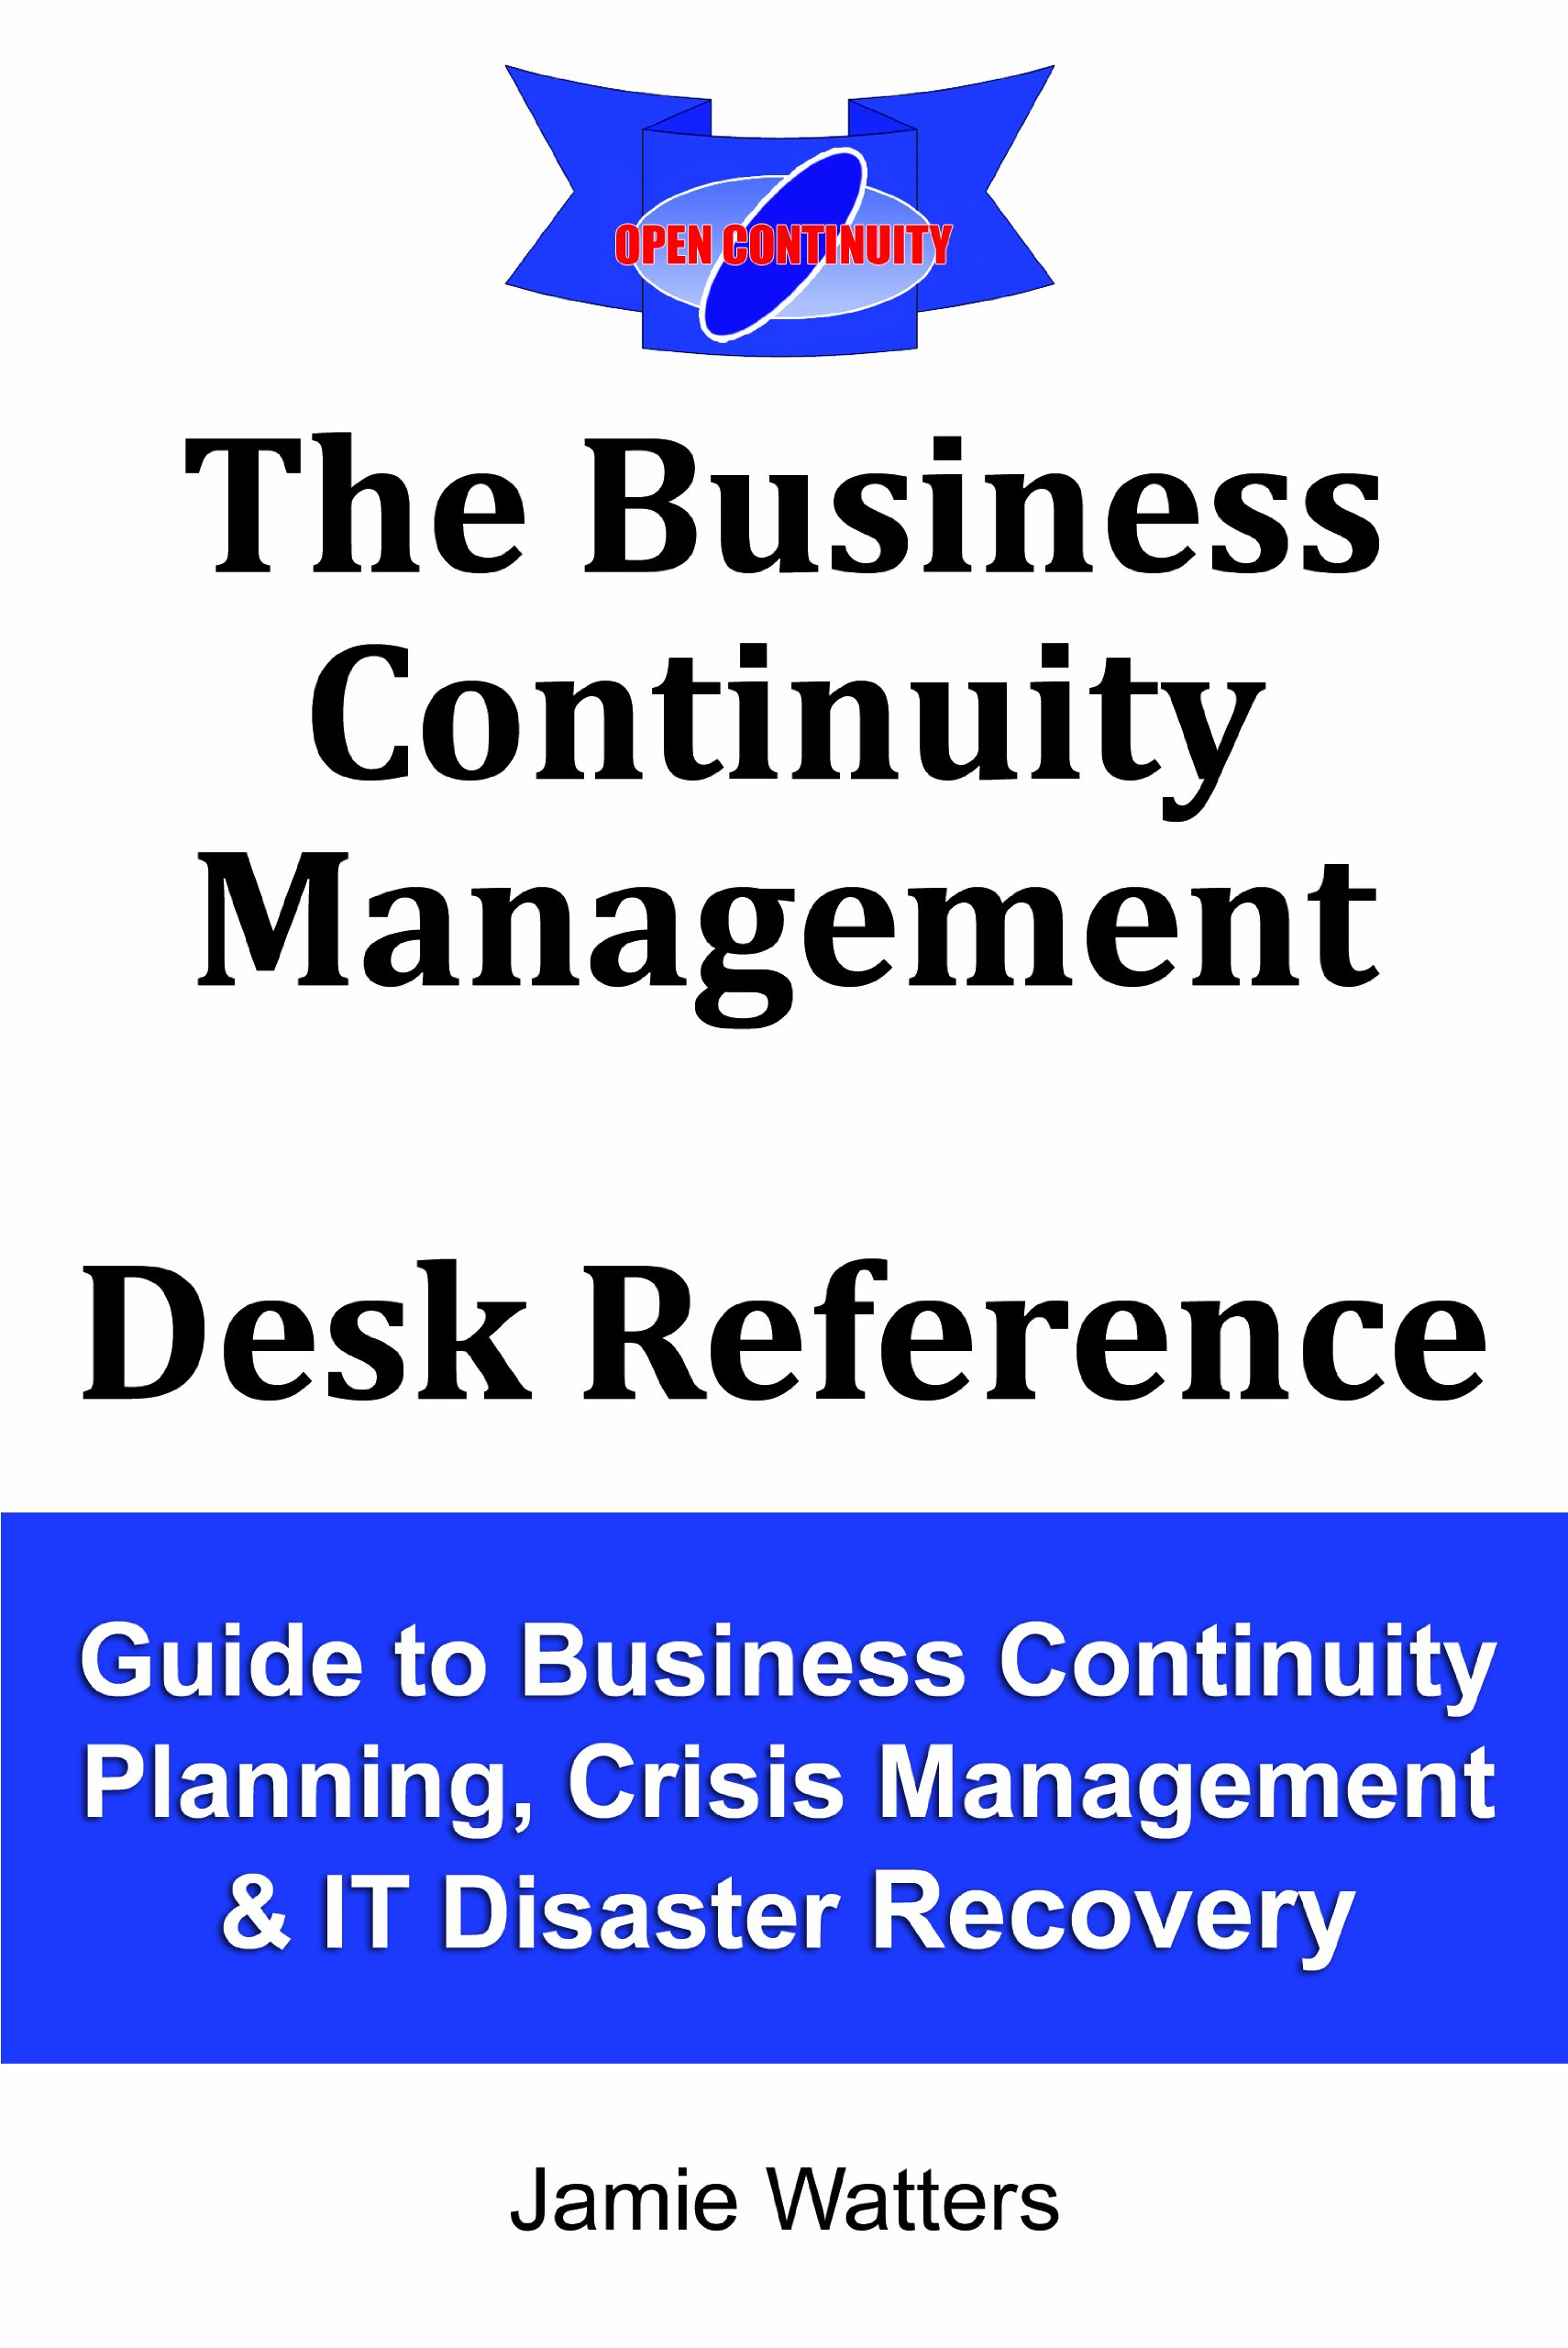 Amazon The Business Continuity Management Desk Reference Guide